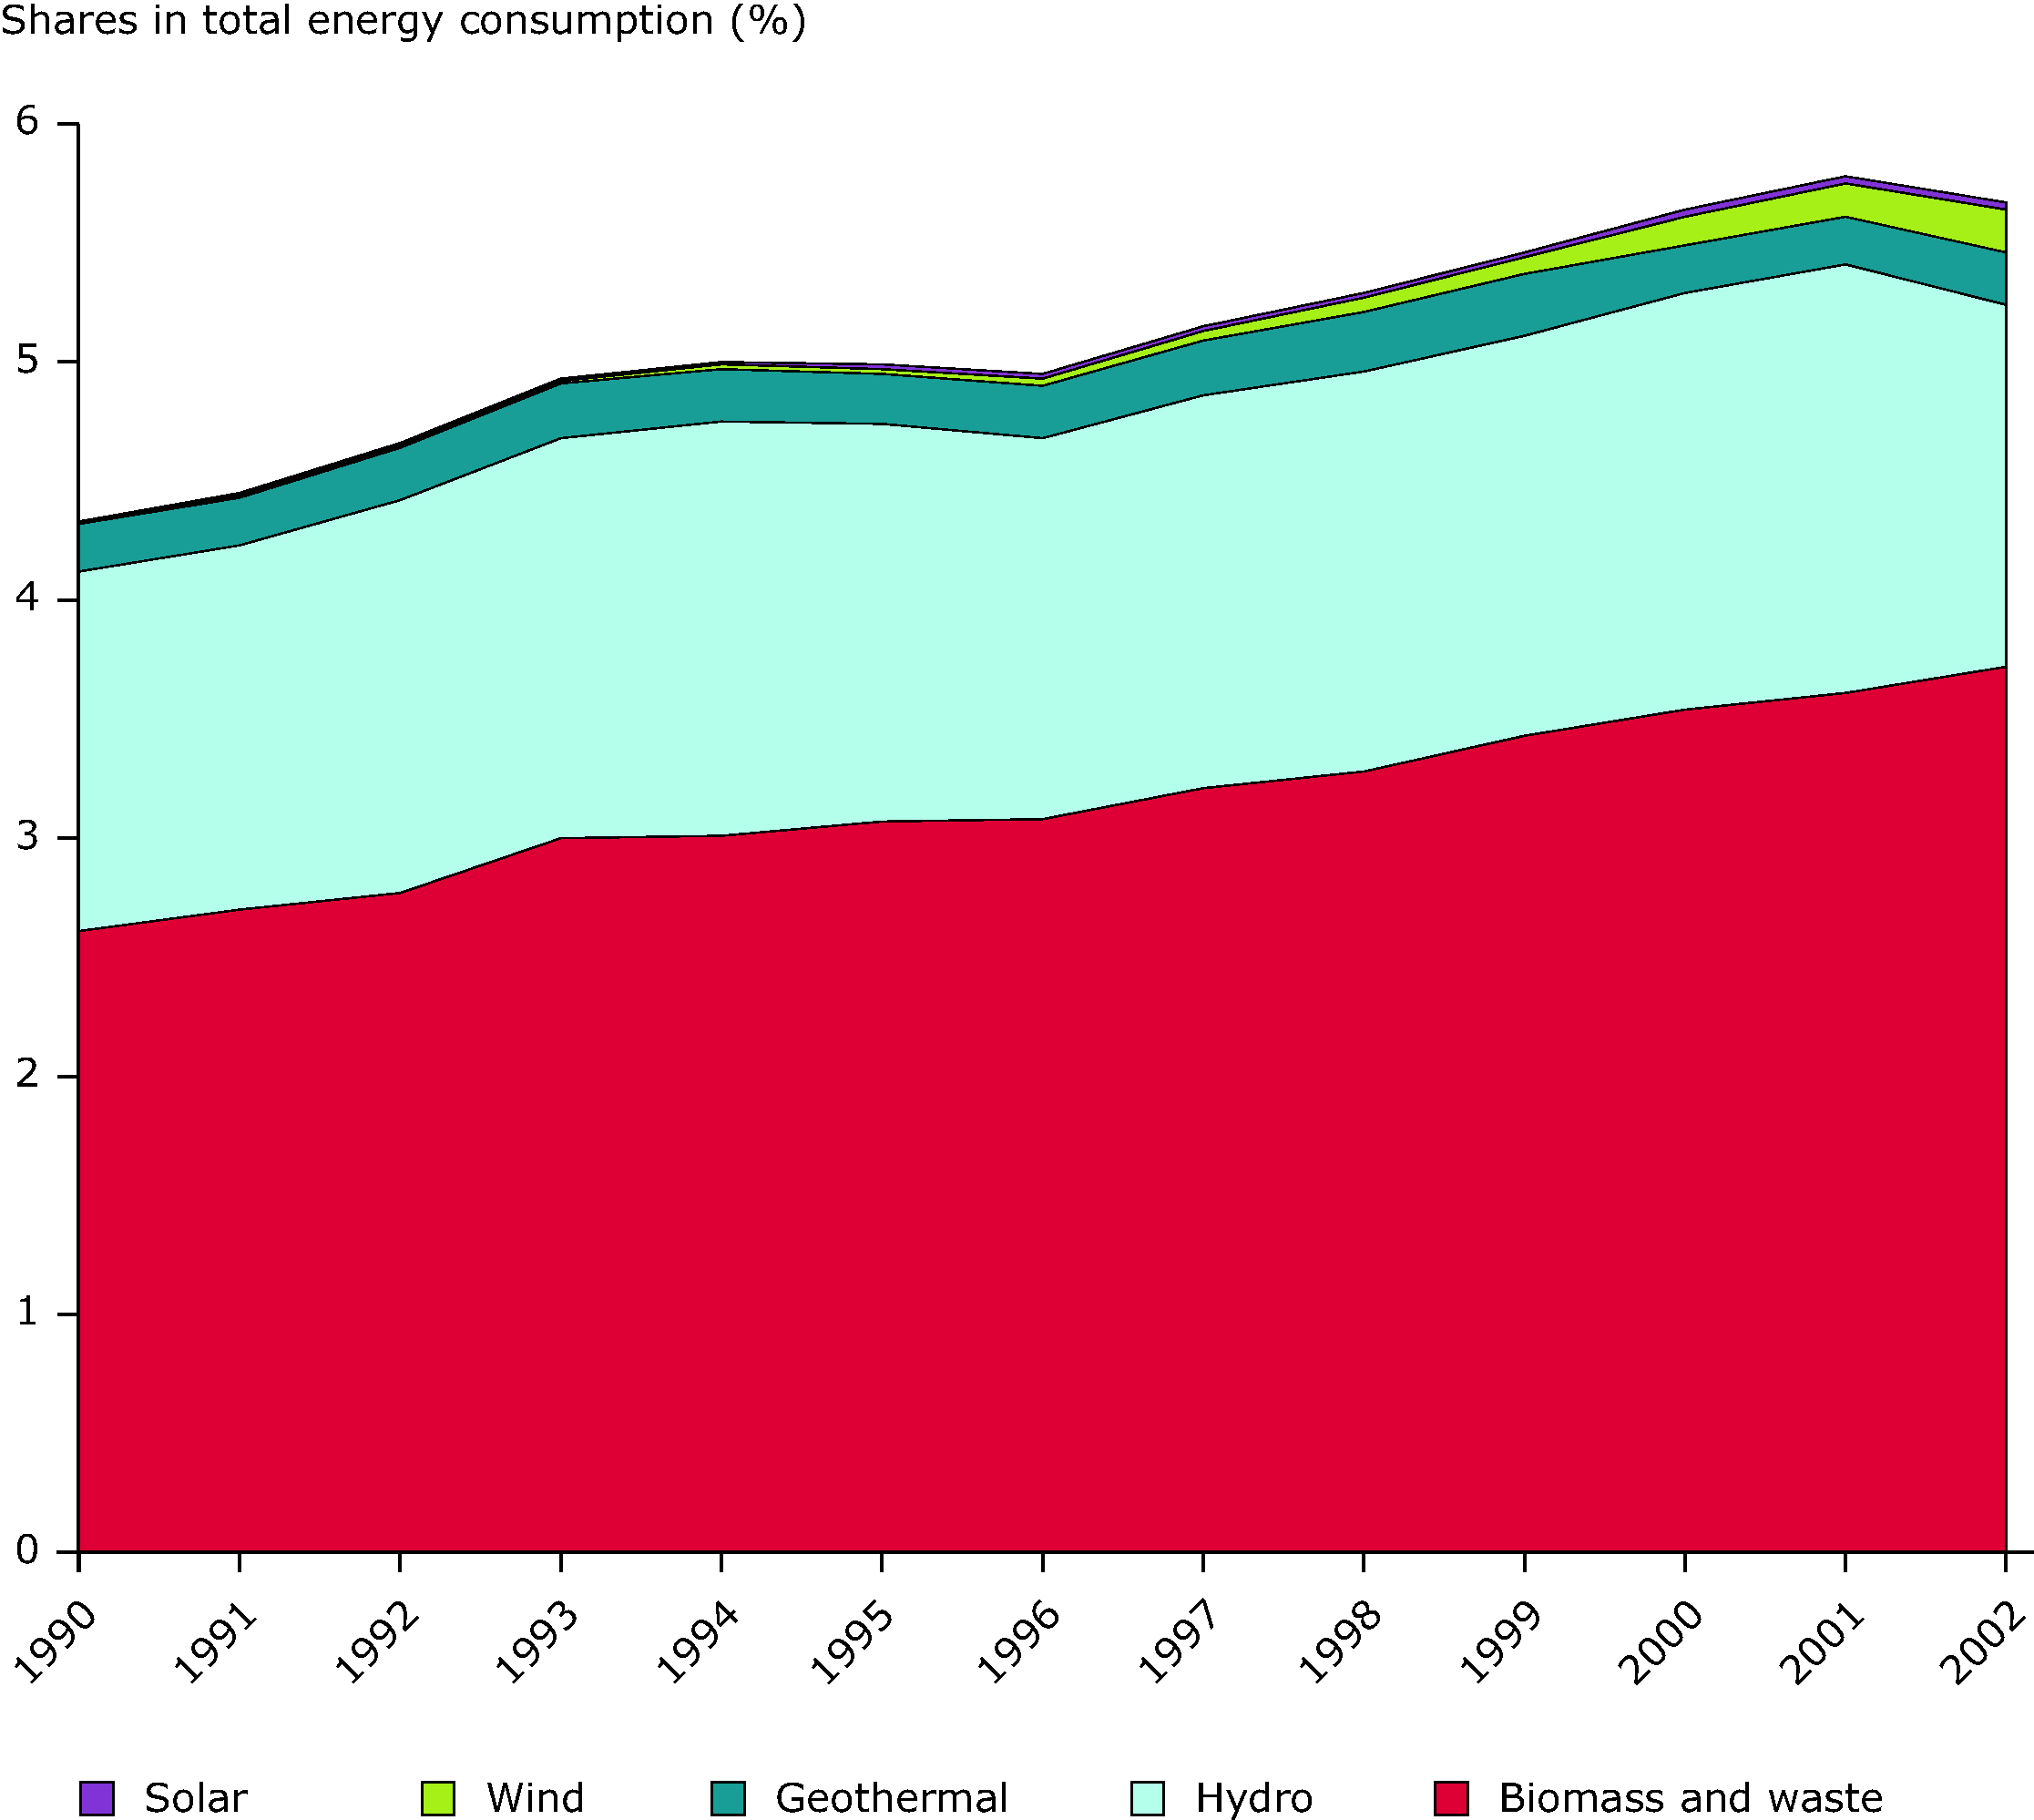 Contribution of renewable energy sources to total energy consumption, EU-25